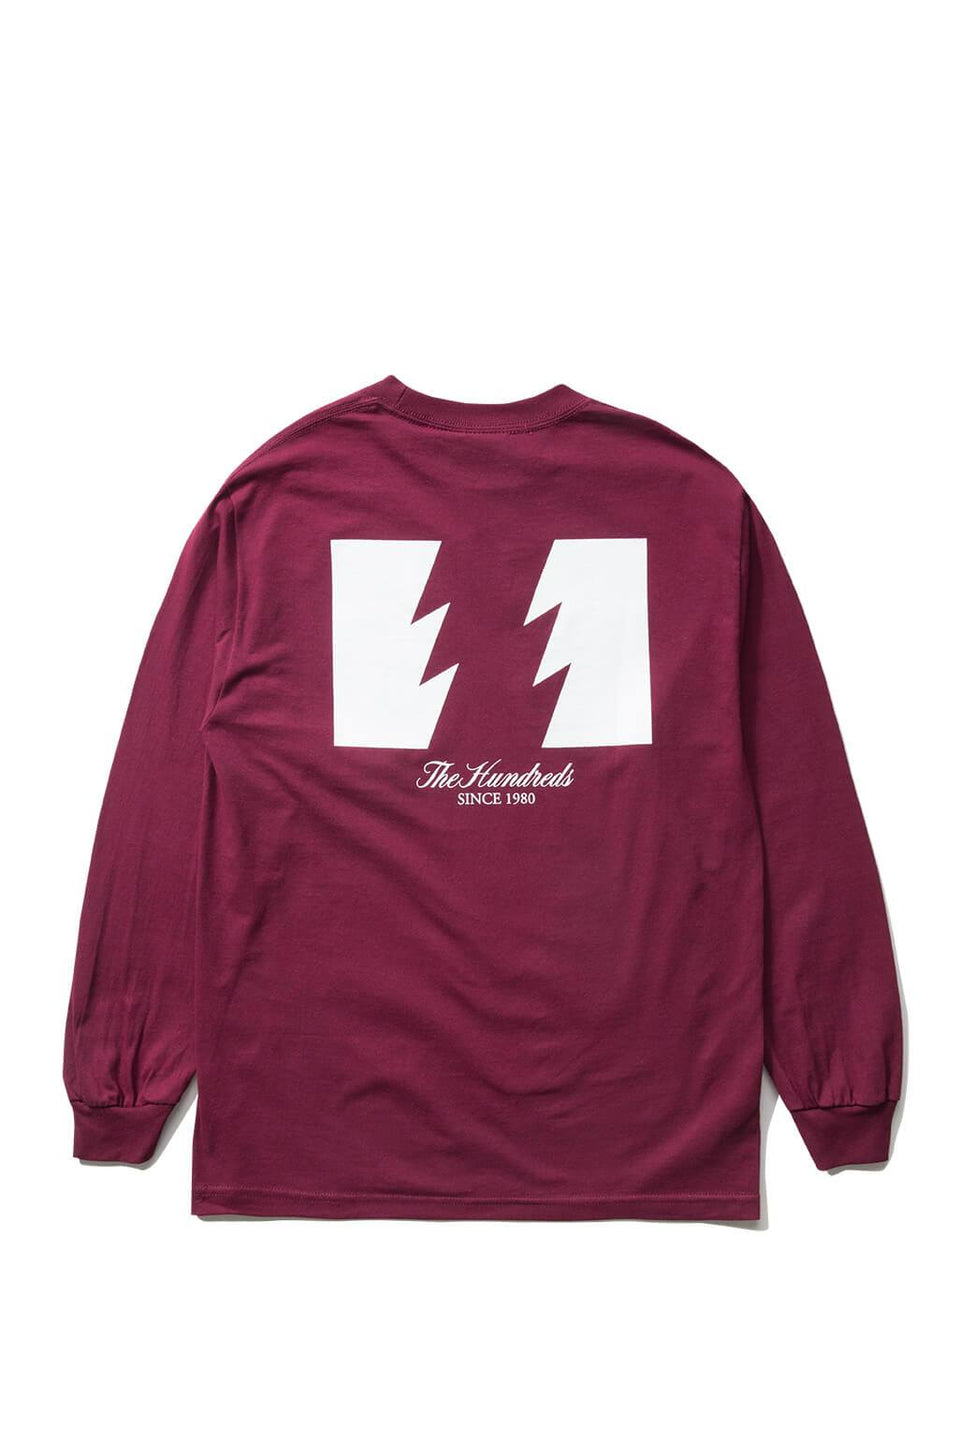 The Hundreds Forever Wildfire Longsleeve Shirt Burgundy Back